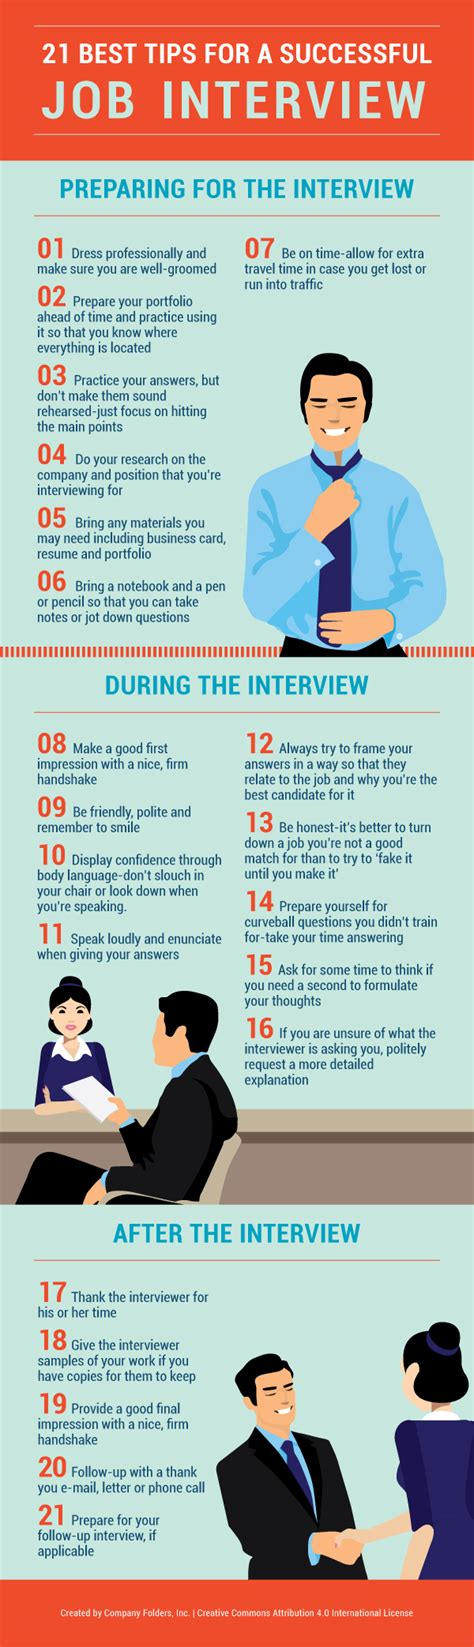 graphic design questions 21 tips infographic higheradvantage org